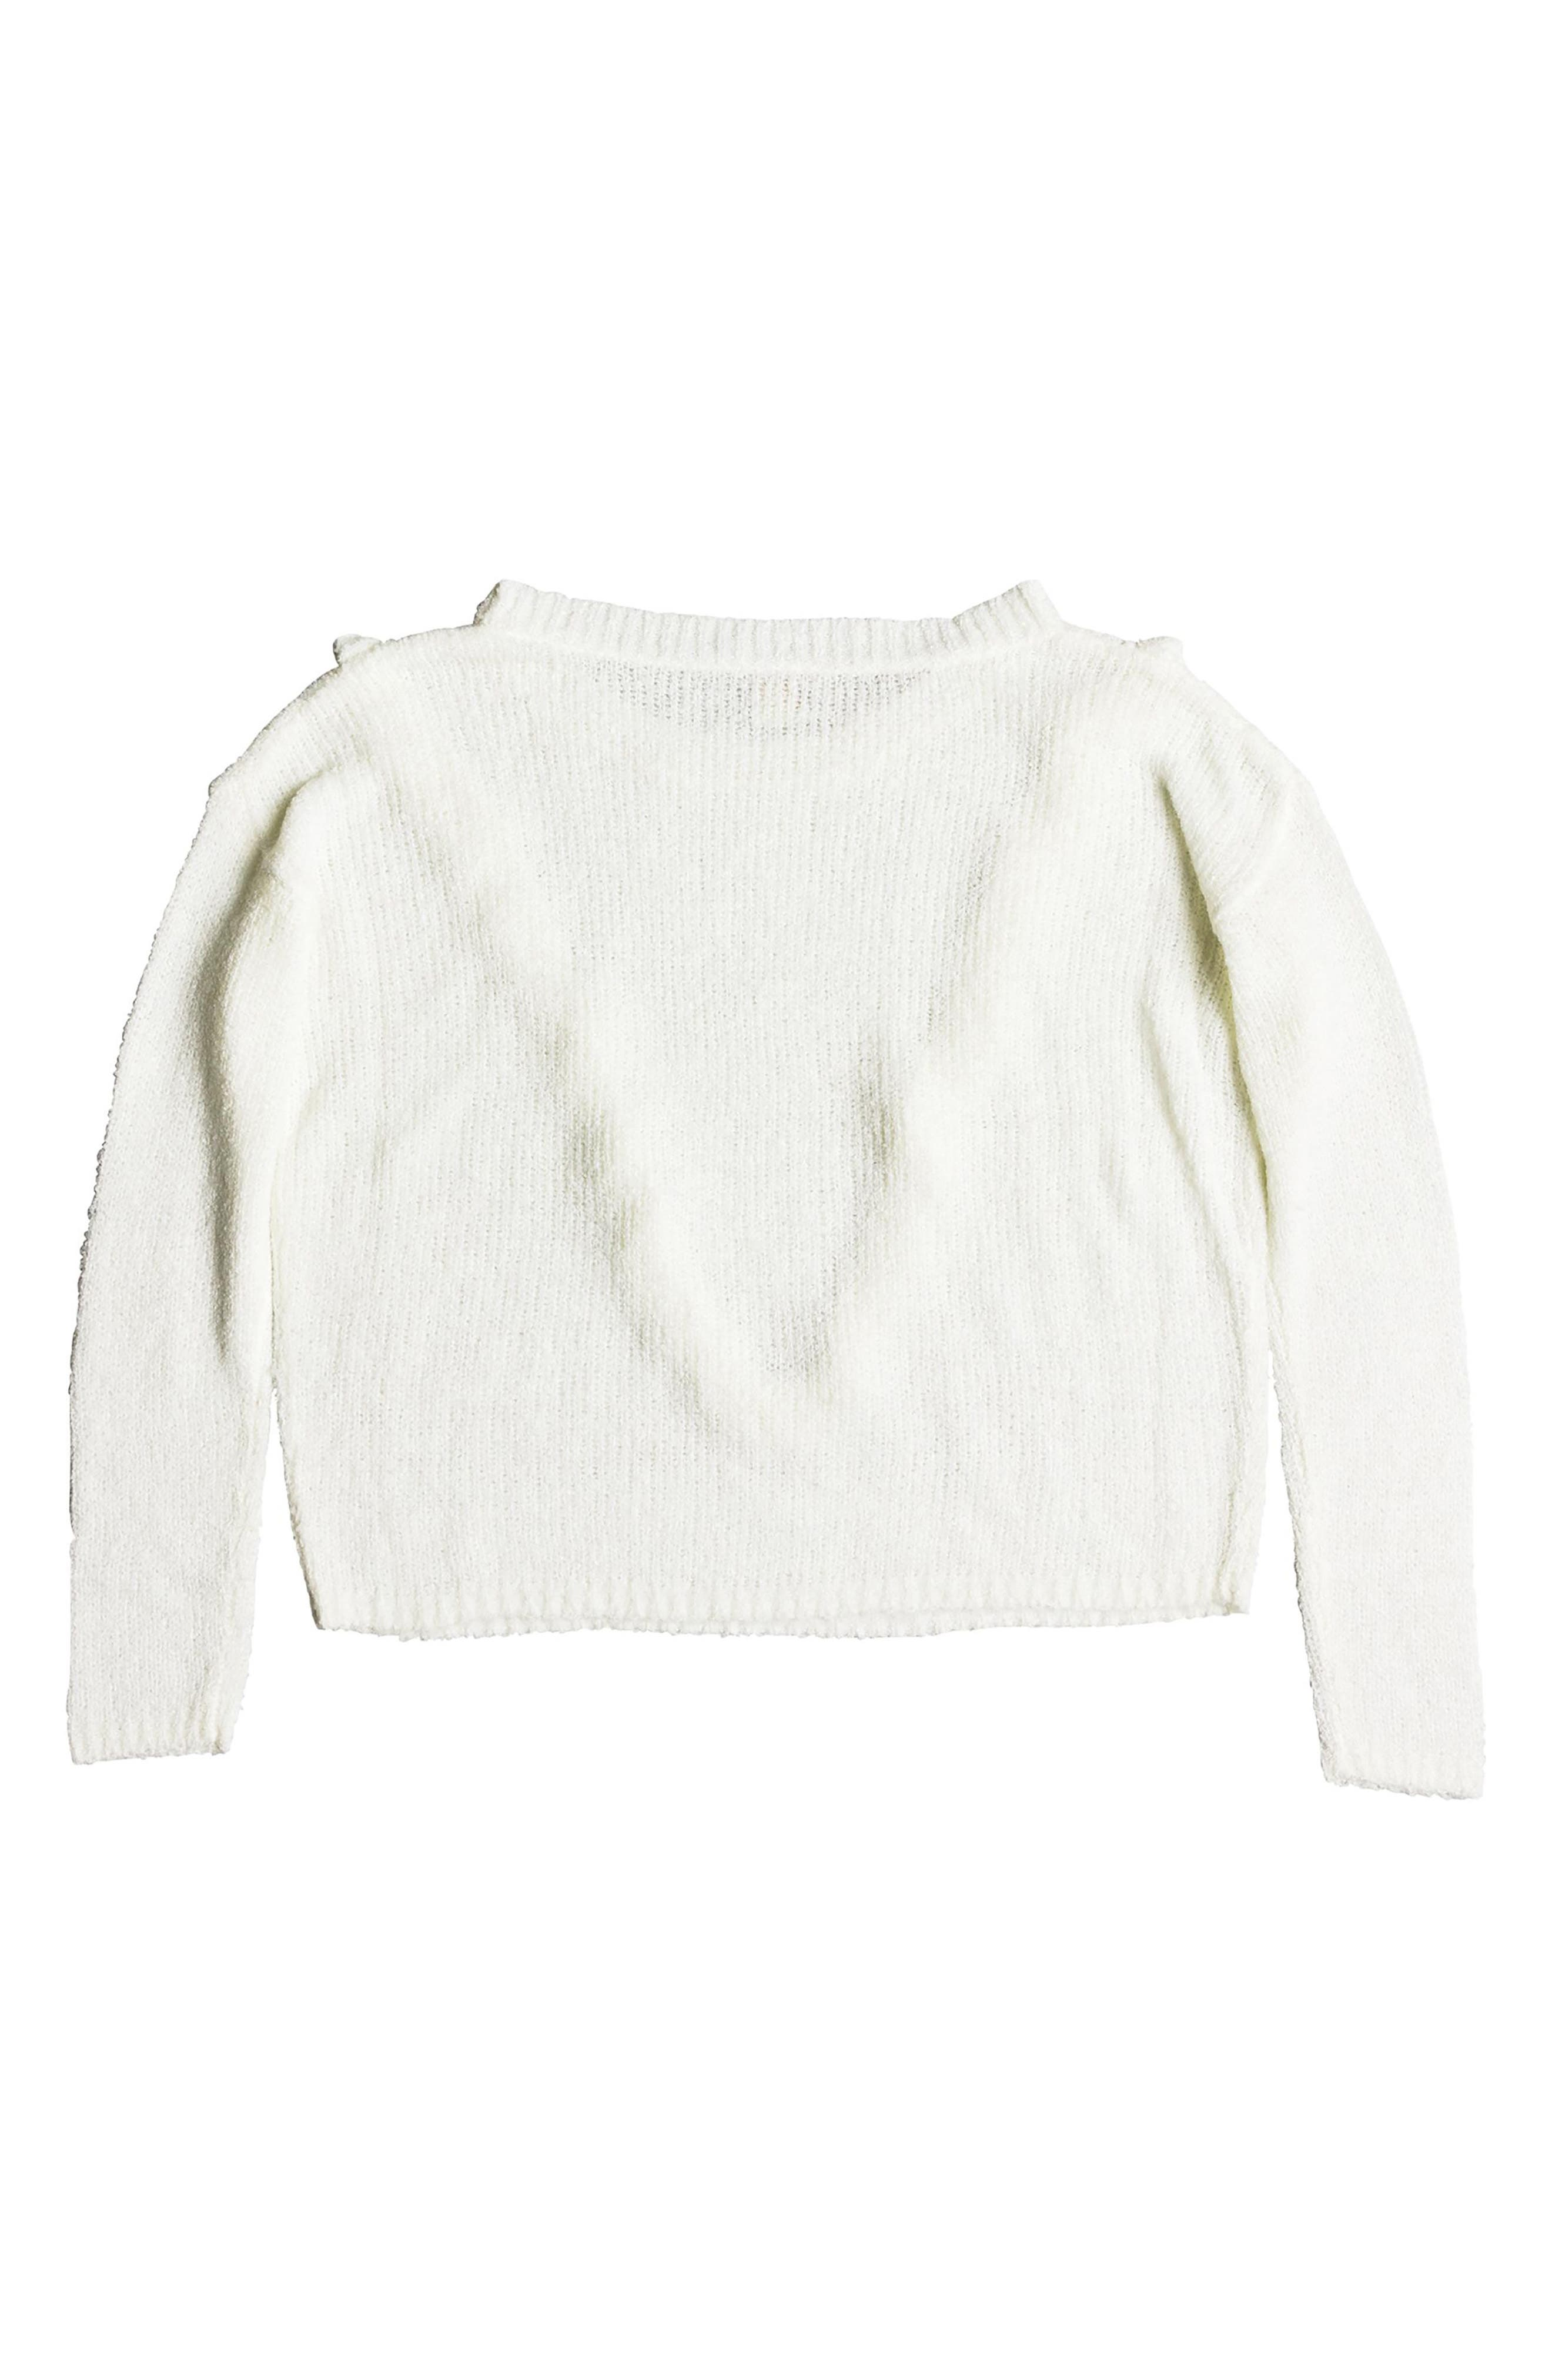 One Fine Stay Ruffle Sweater,                             Alternate thumbnail 6, color,                             MARSHMALLOW